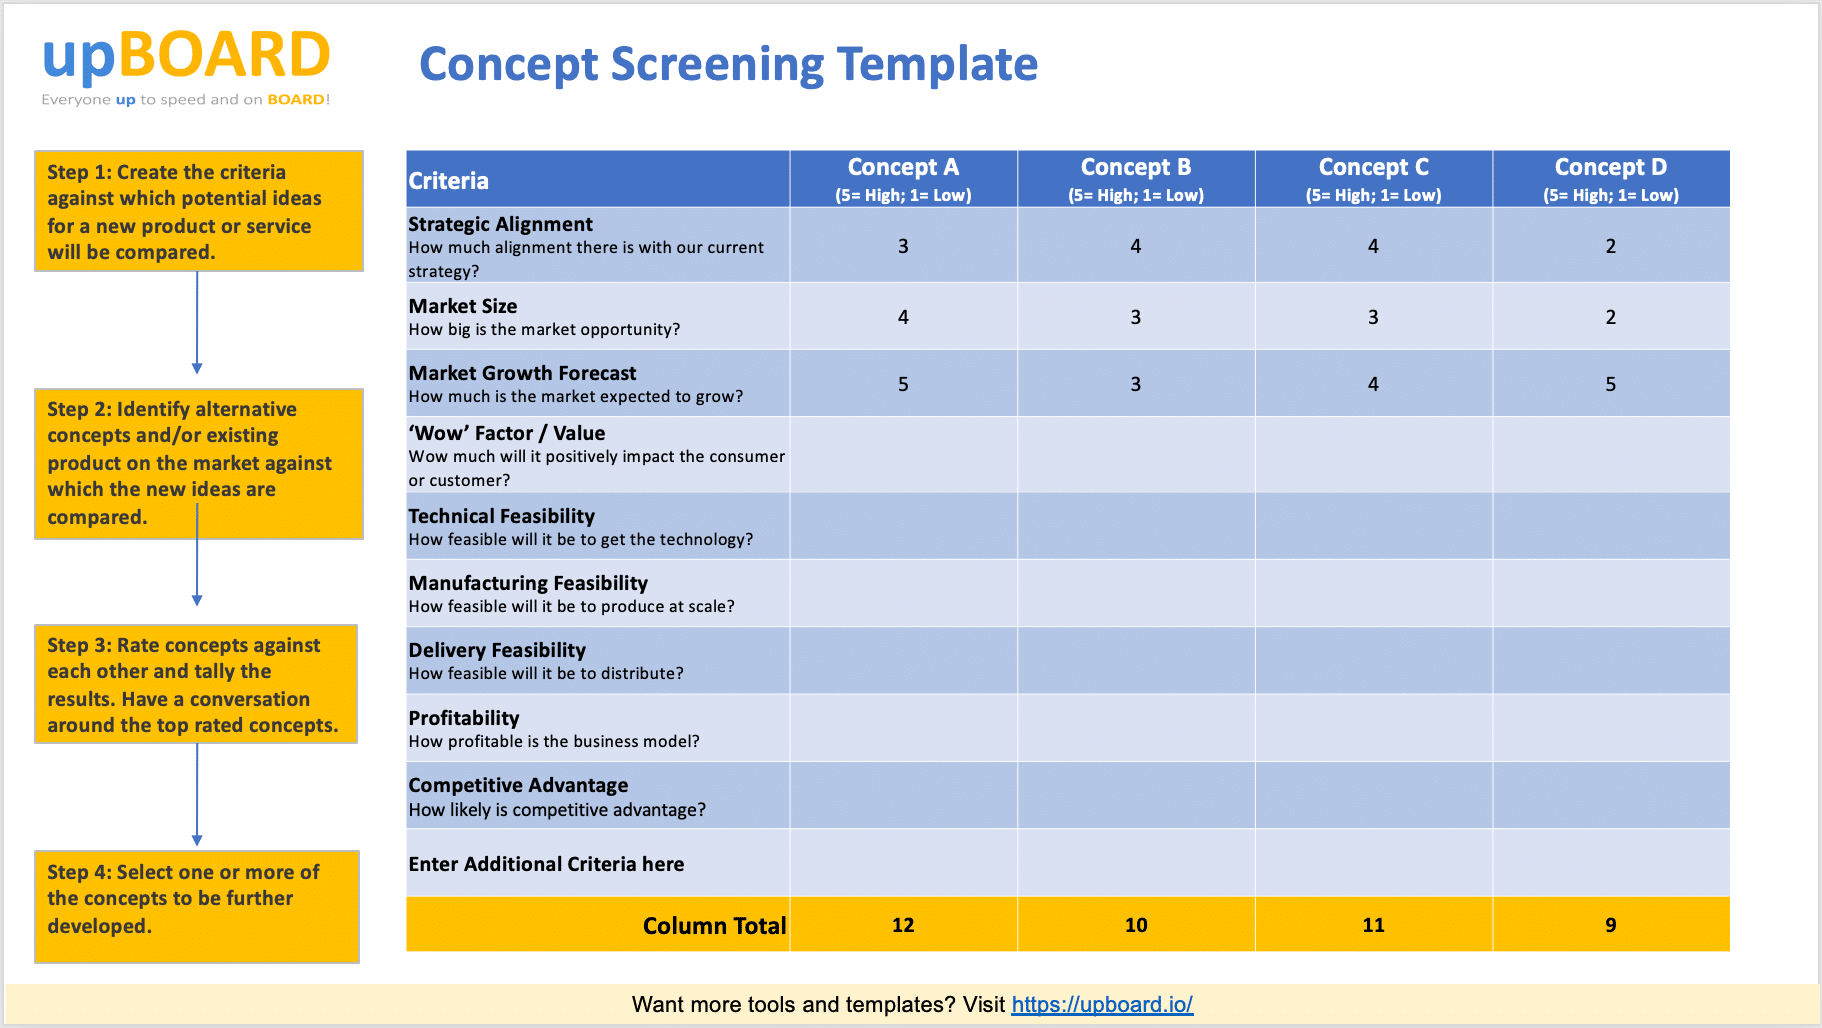 Concept Screening Template - Free PowerPoint Tool